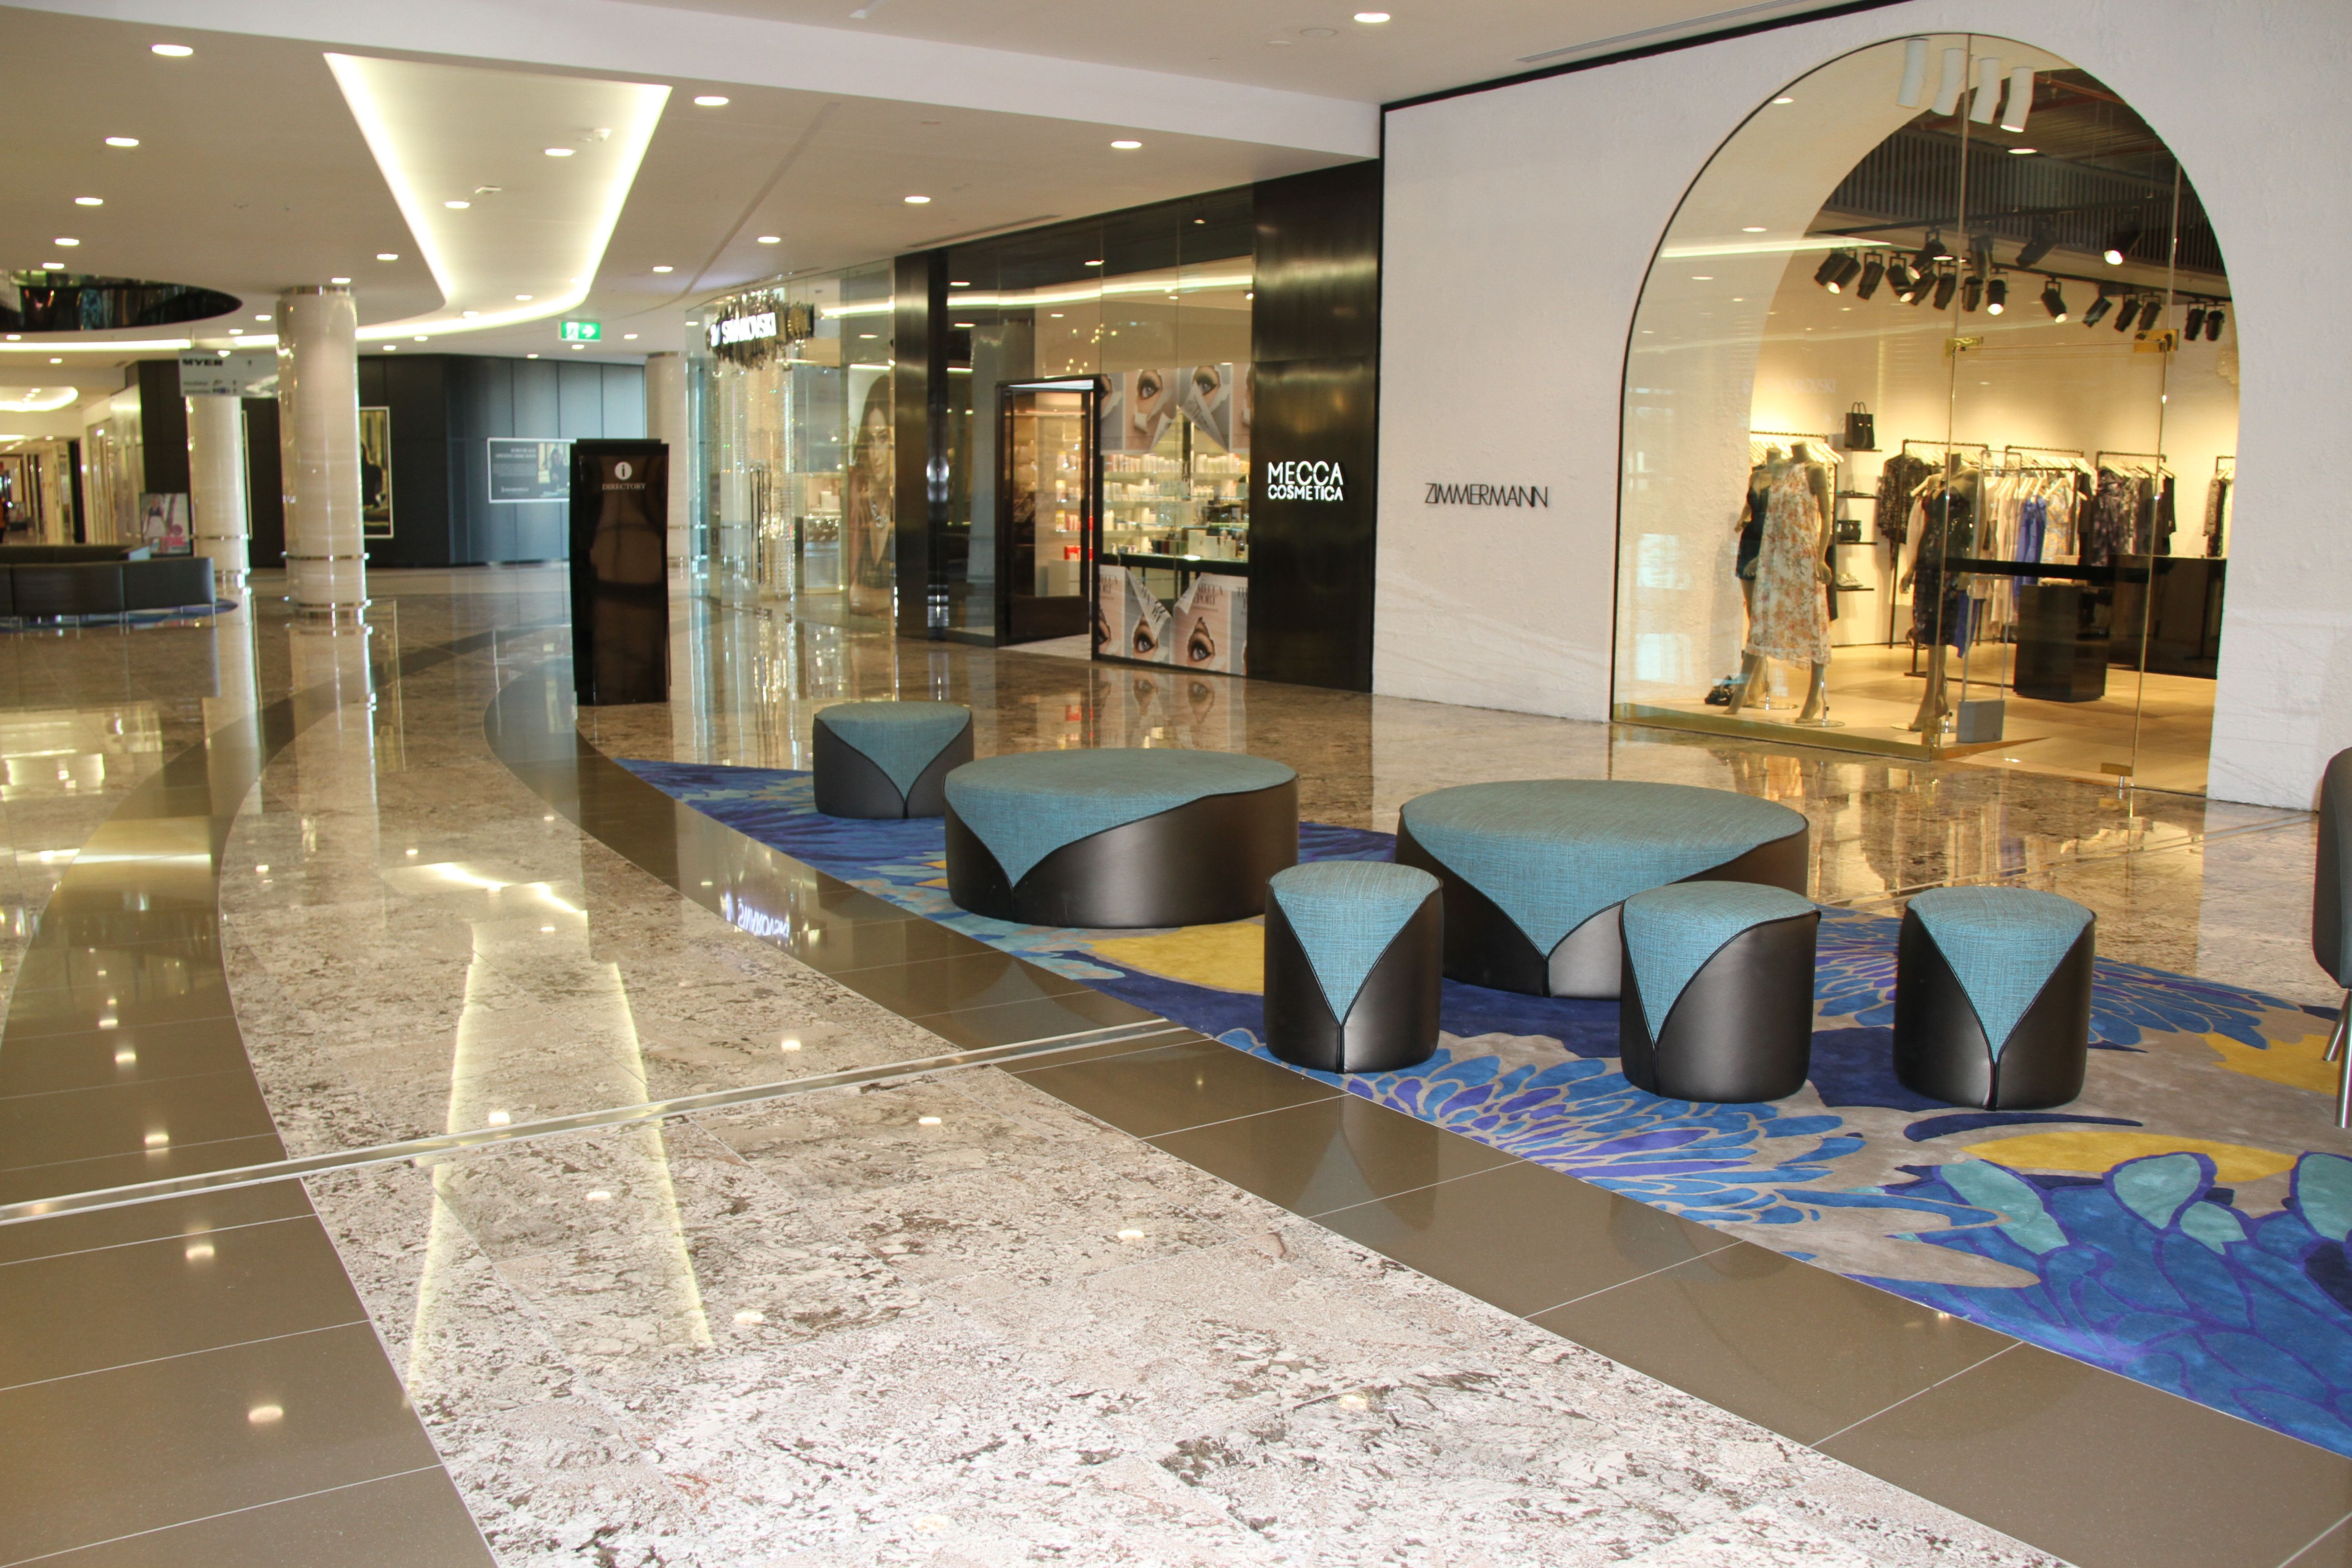 Indooroopilly Shopping Centre Featuring our Yara ottoman